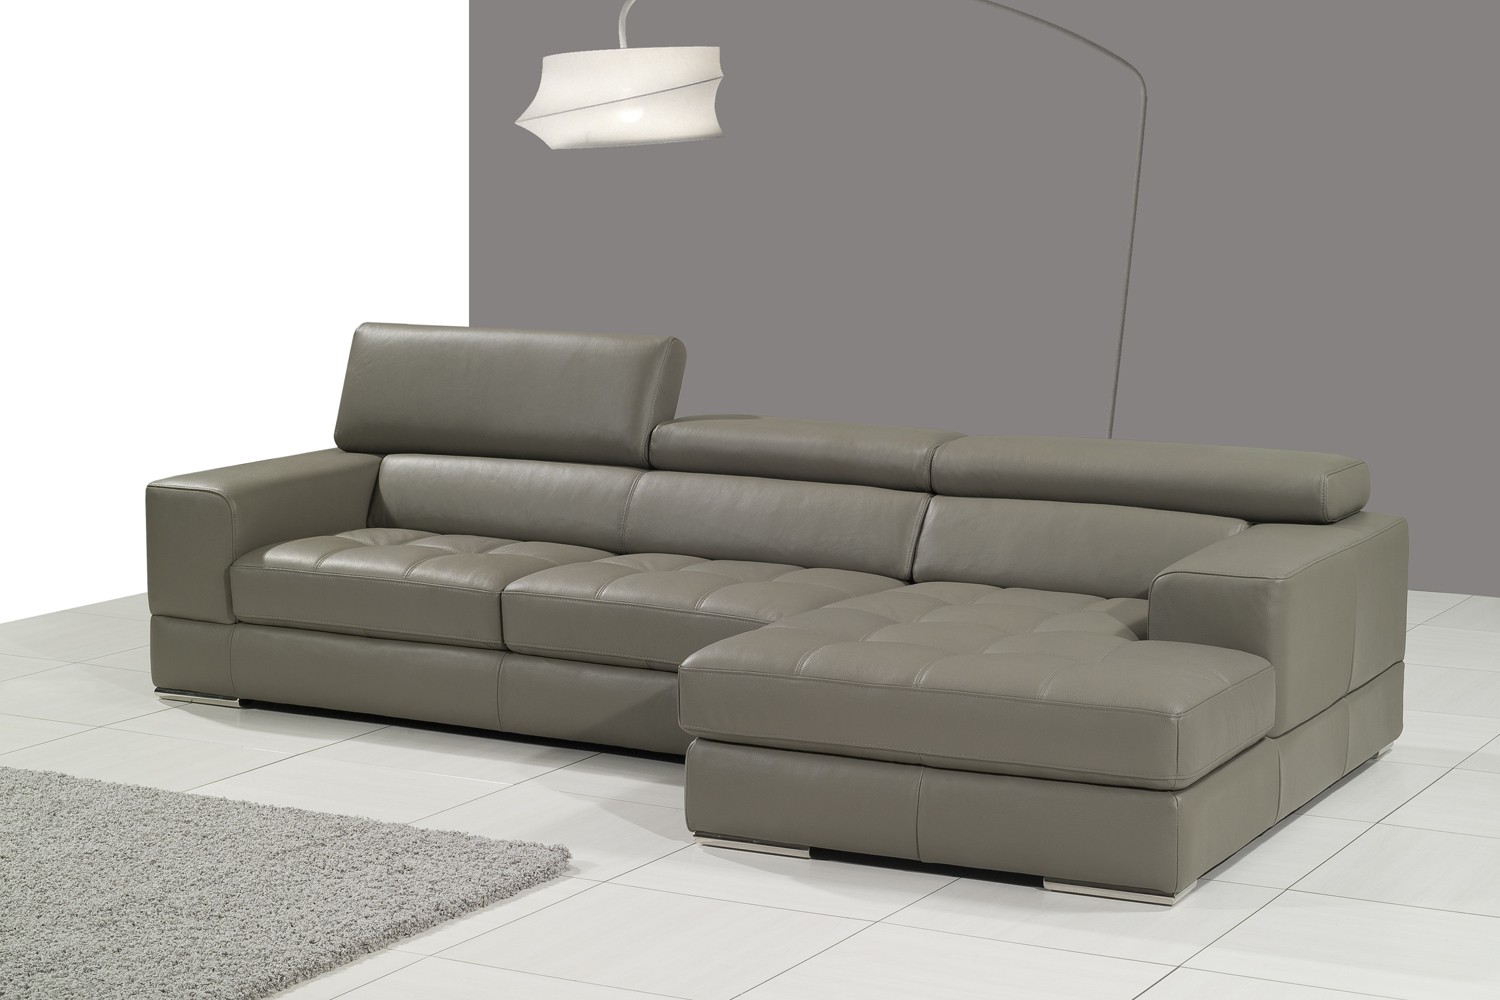 gray leather sectional couch couch sofa ideas interior design. Black Bedroom Furniture Sets. Home Design Ideas